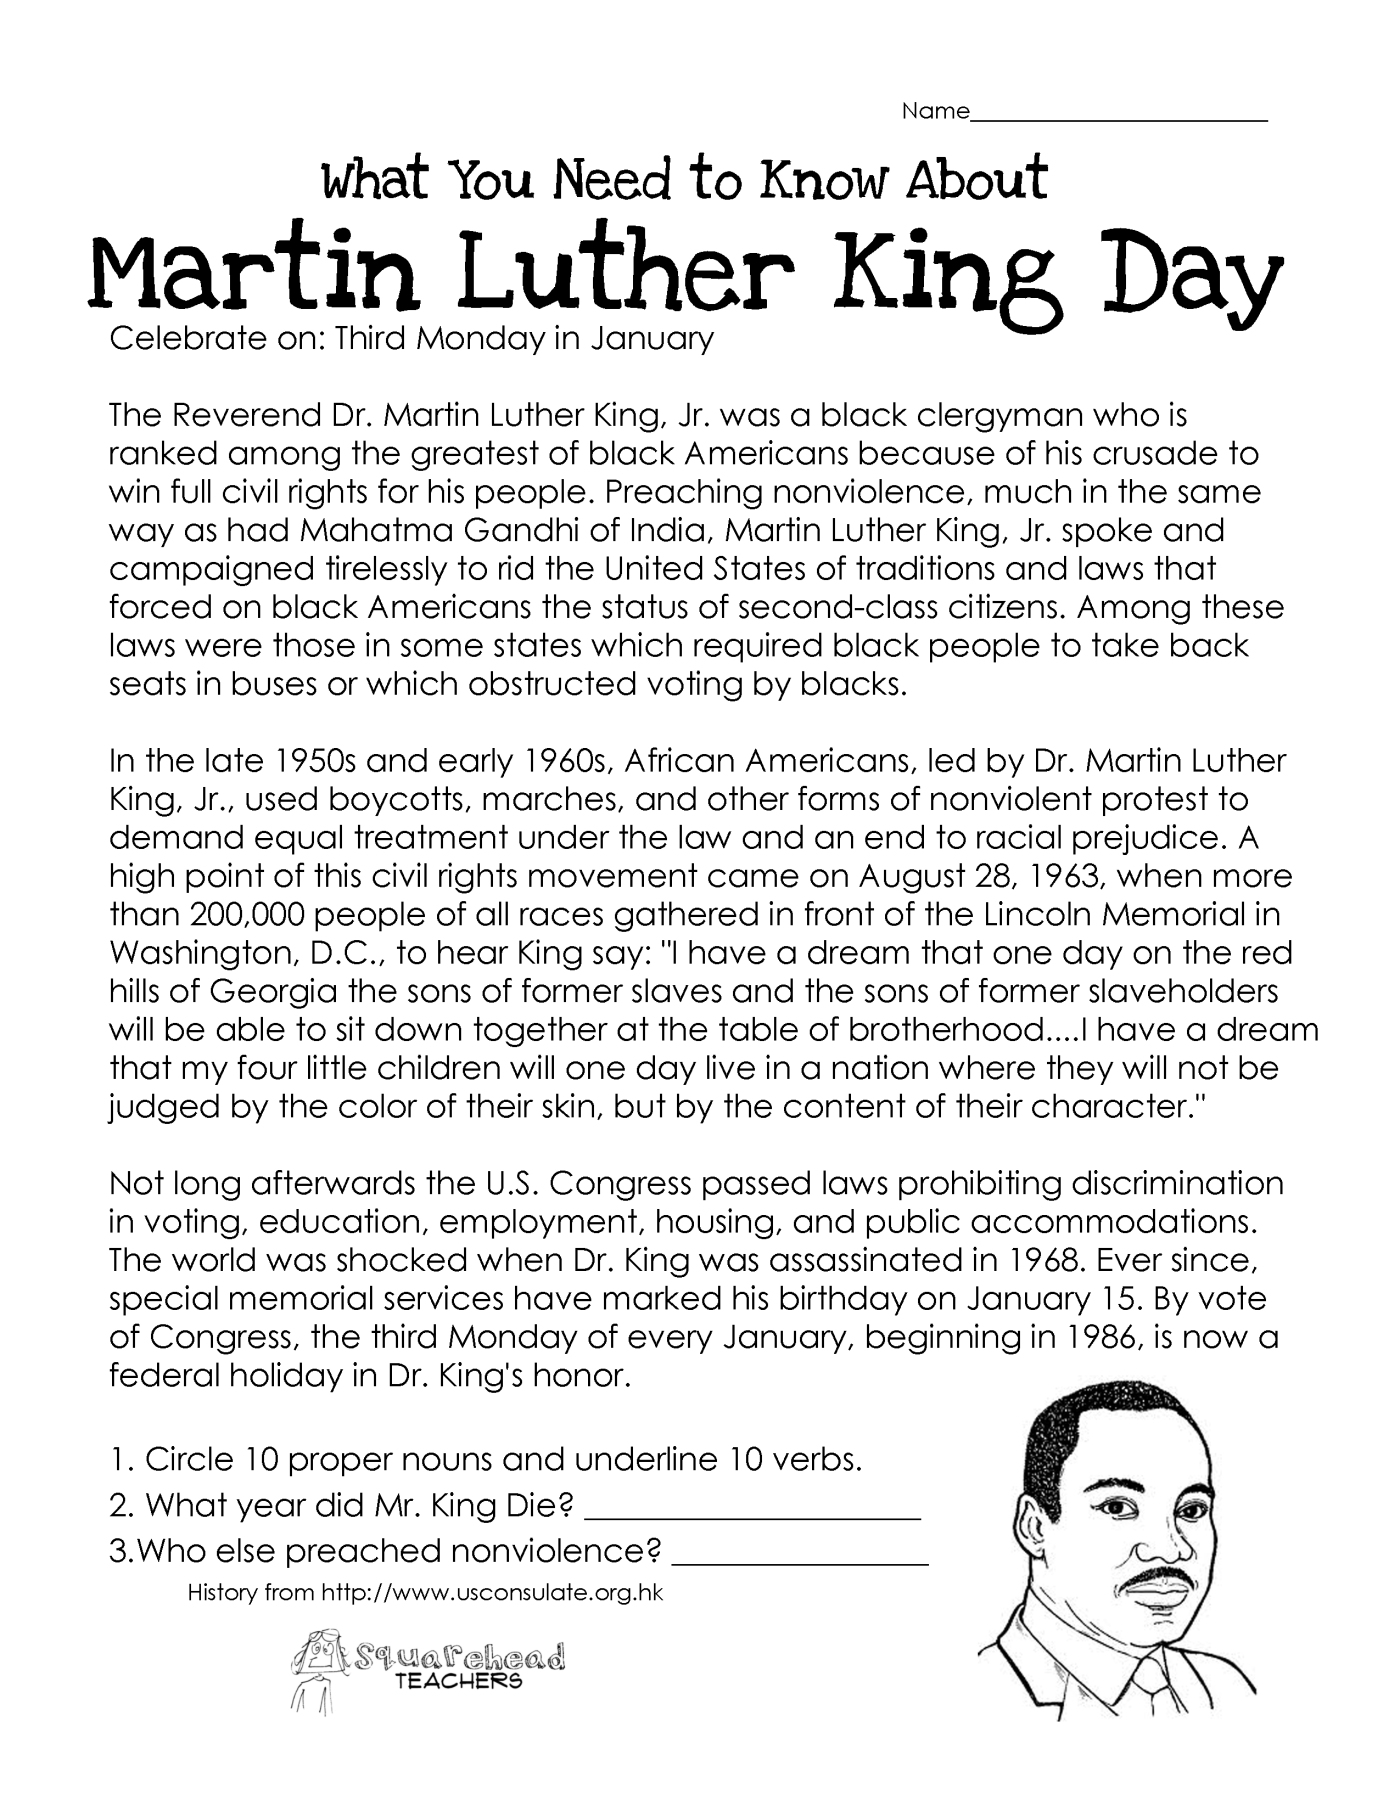 Coloring pictures martin luther king jr - Free Worksheet Martin Luther King Jr Worksheets Martin Luther King Day Free Worksheet Squarehead Teachers